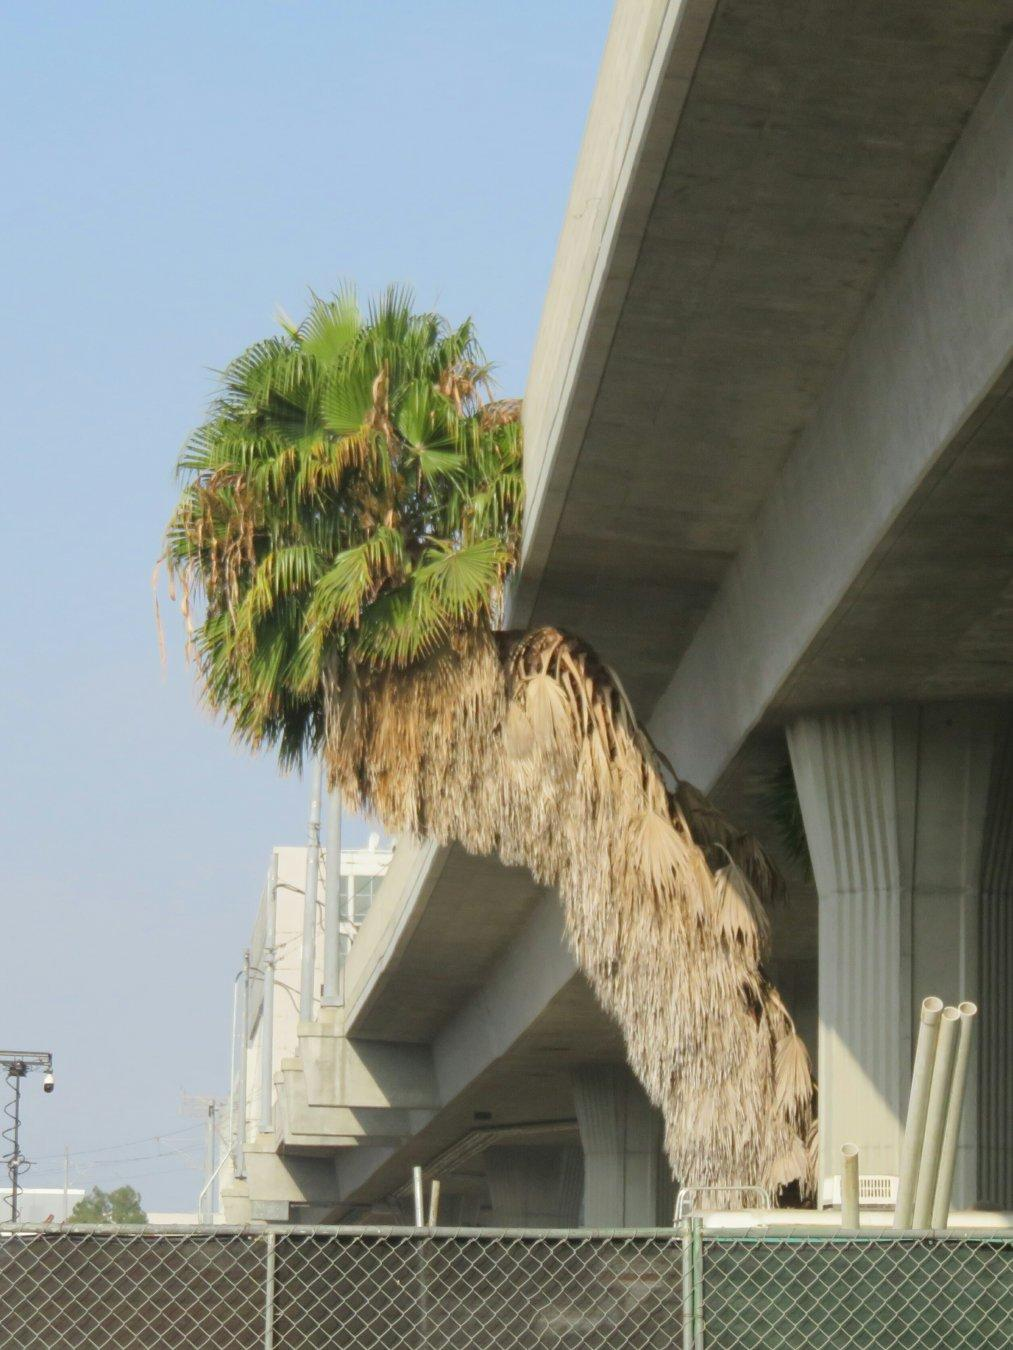 Finally stopped to take a photo of this tenacious palm tree. Not sure whether it was planted or if it just took root next to the support pillar back when the Green Line was new 2 decades ago. It's clearly not actively maintained, judging by all the old dry fronds still attached, and I keep wondering if it'll get taken out as part of the construction of the Crenshaw line...but that construction's almost done, and the tree's still there. #LosAngeles #tree #PalmTree